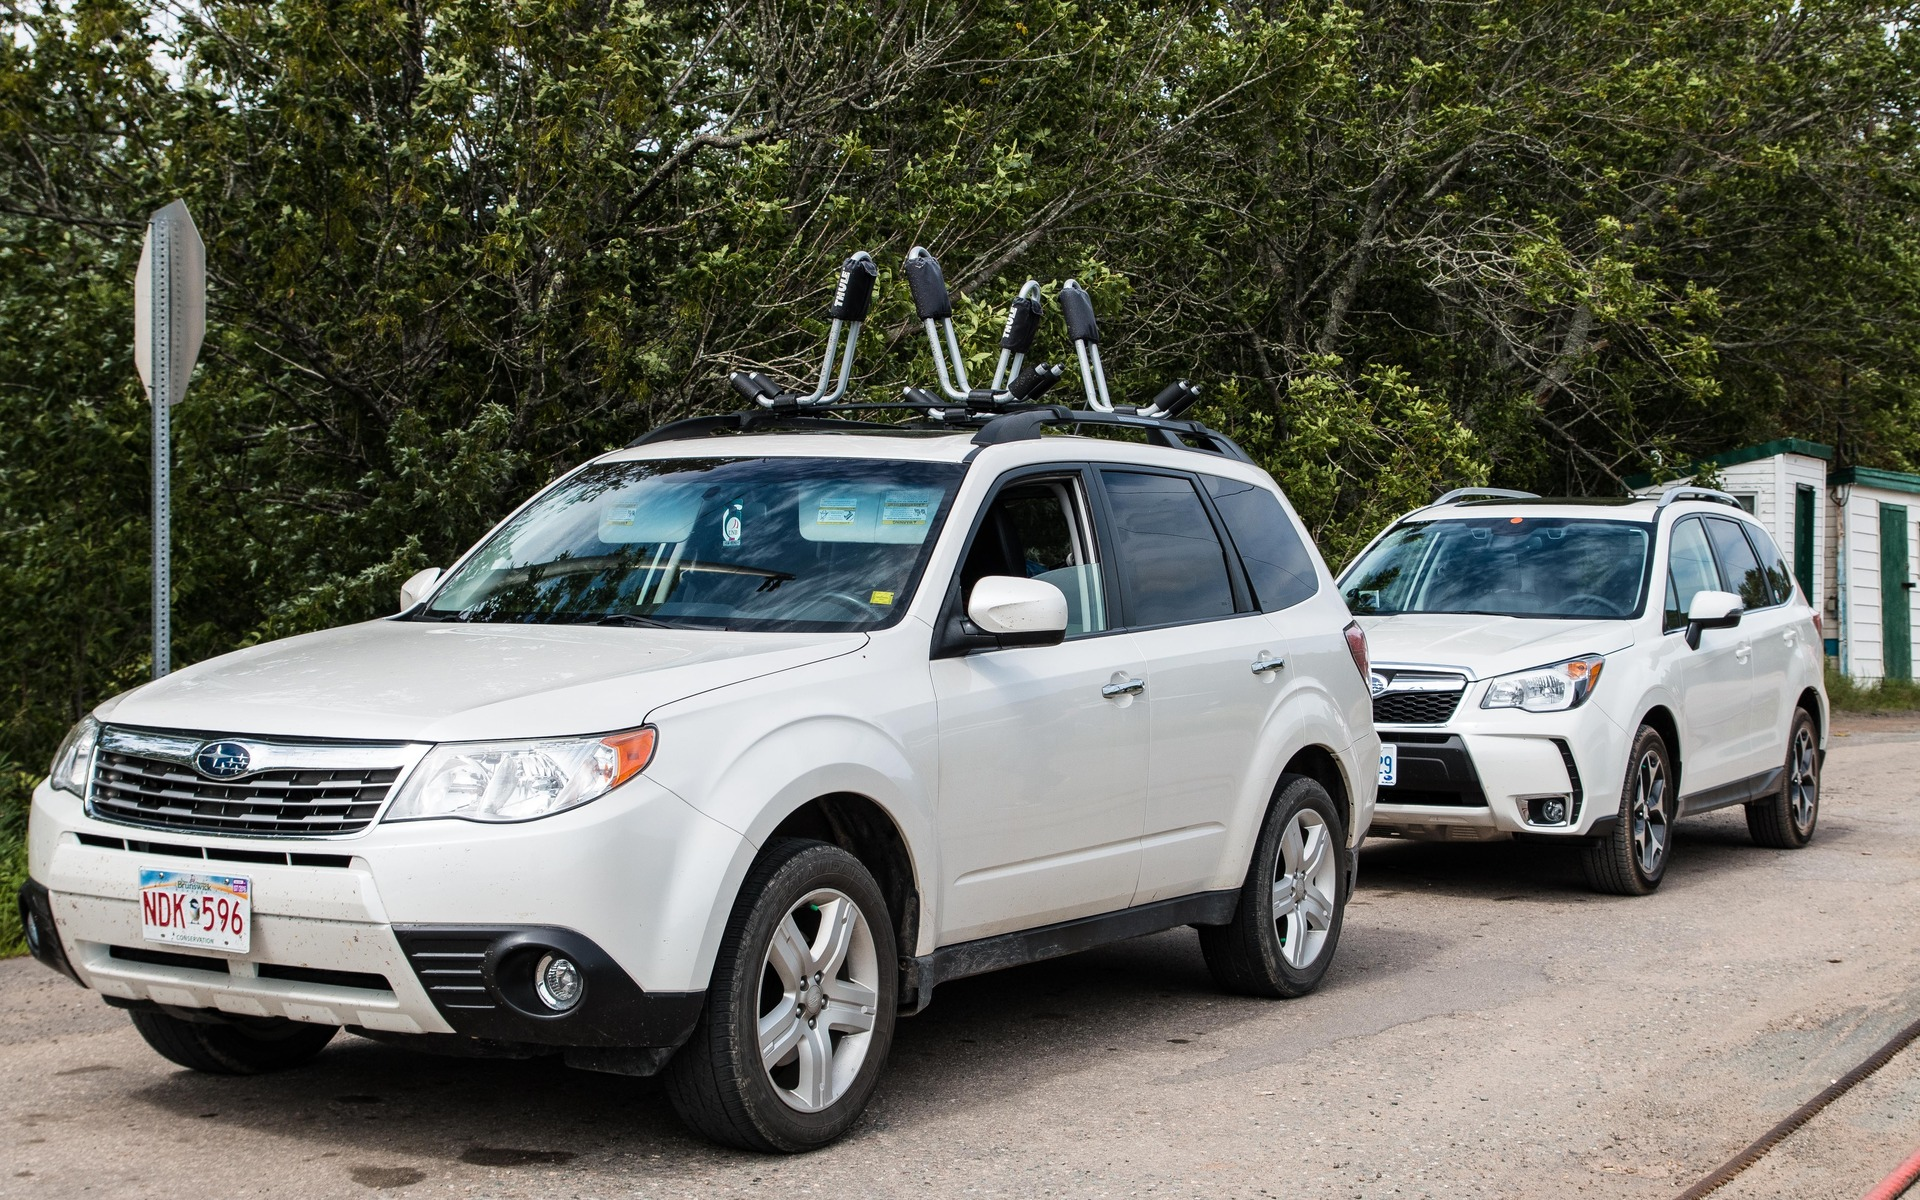 Used Subaru Forester >> The Subaru Forester: Built For Affluent Boomers? - 1/14